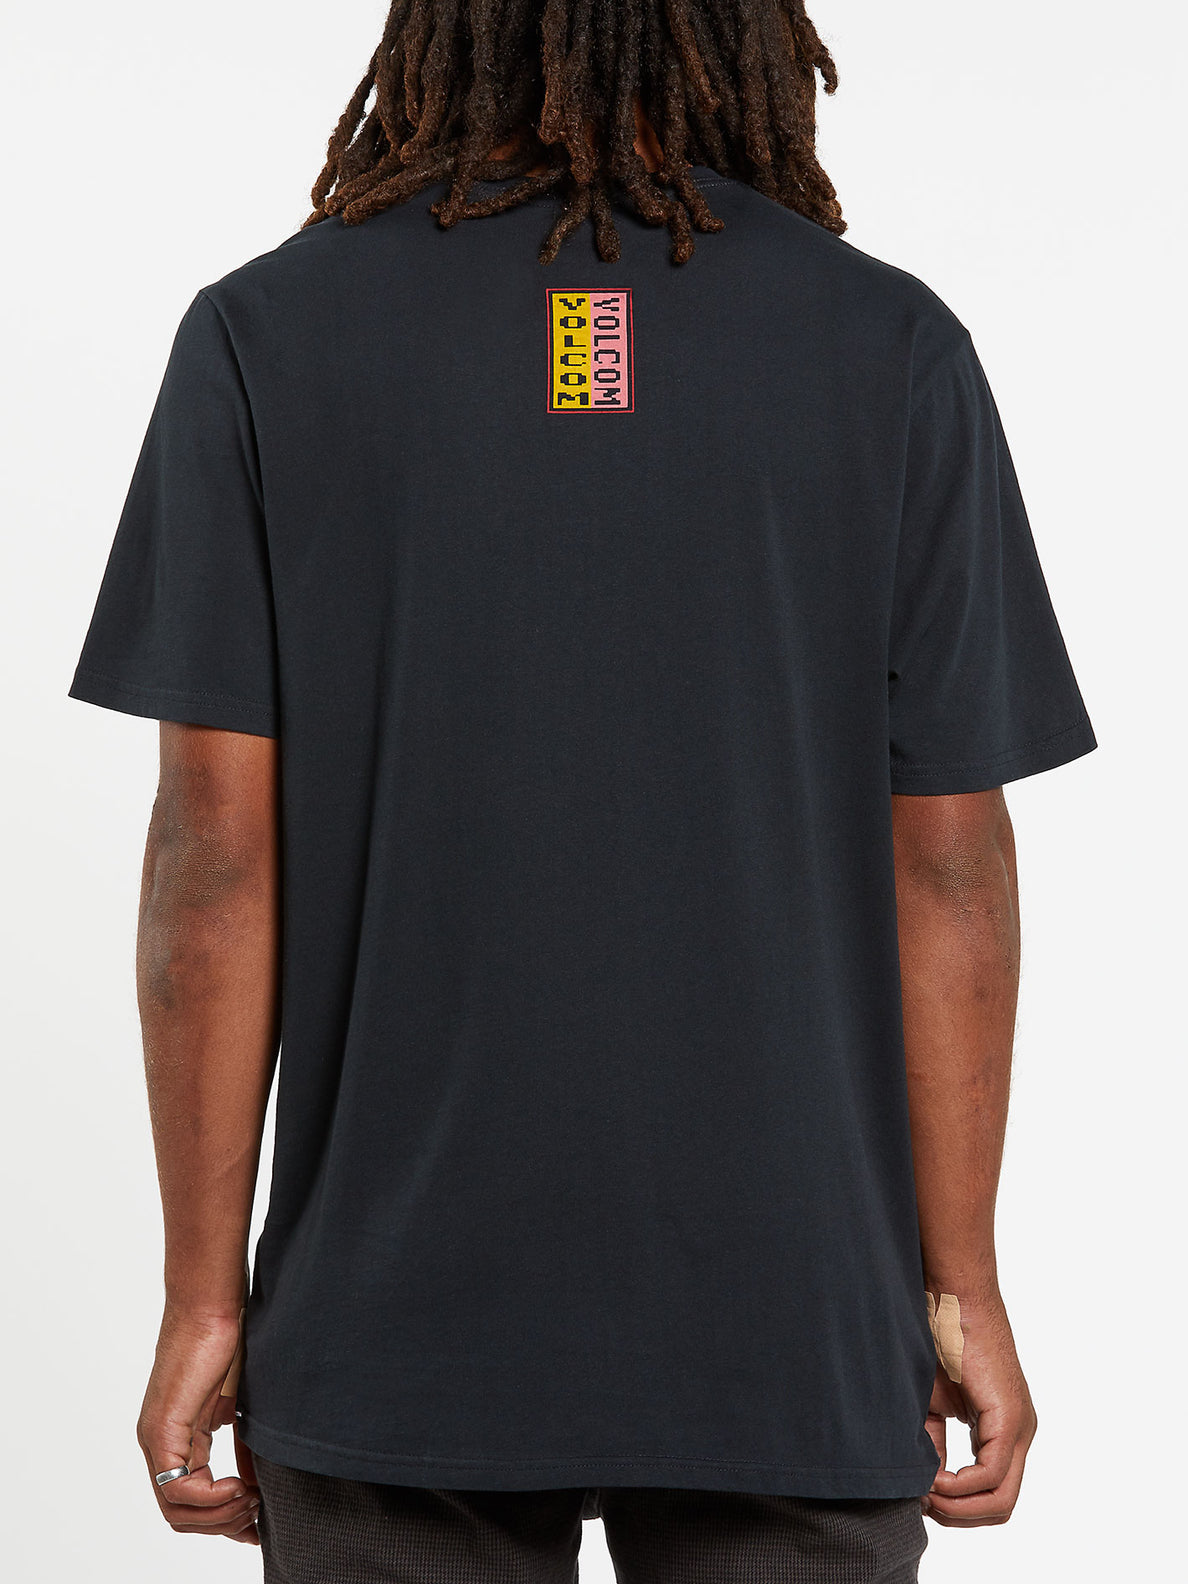 Embedded Face Short Sleeve Tee - Black (A5032003_BLK) [B]